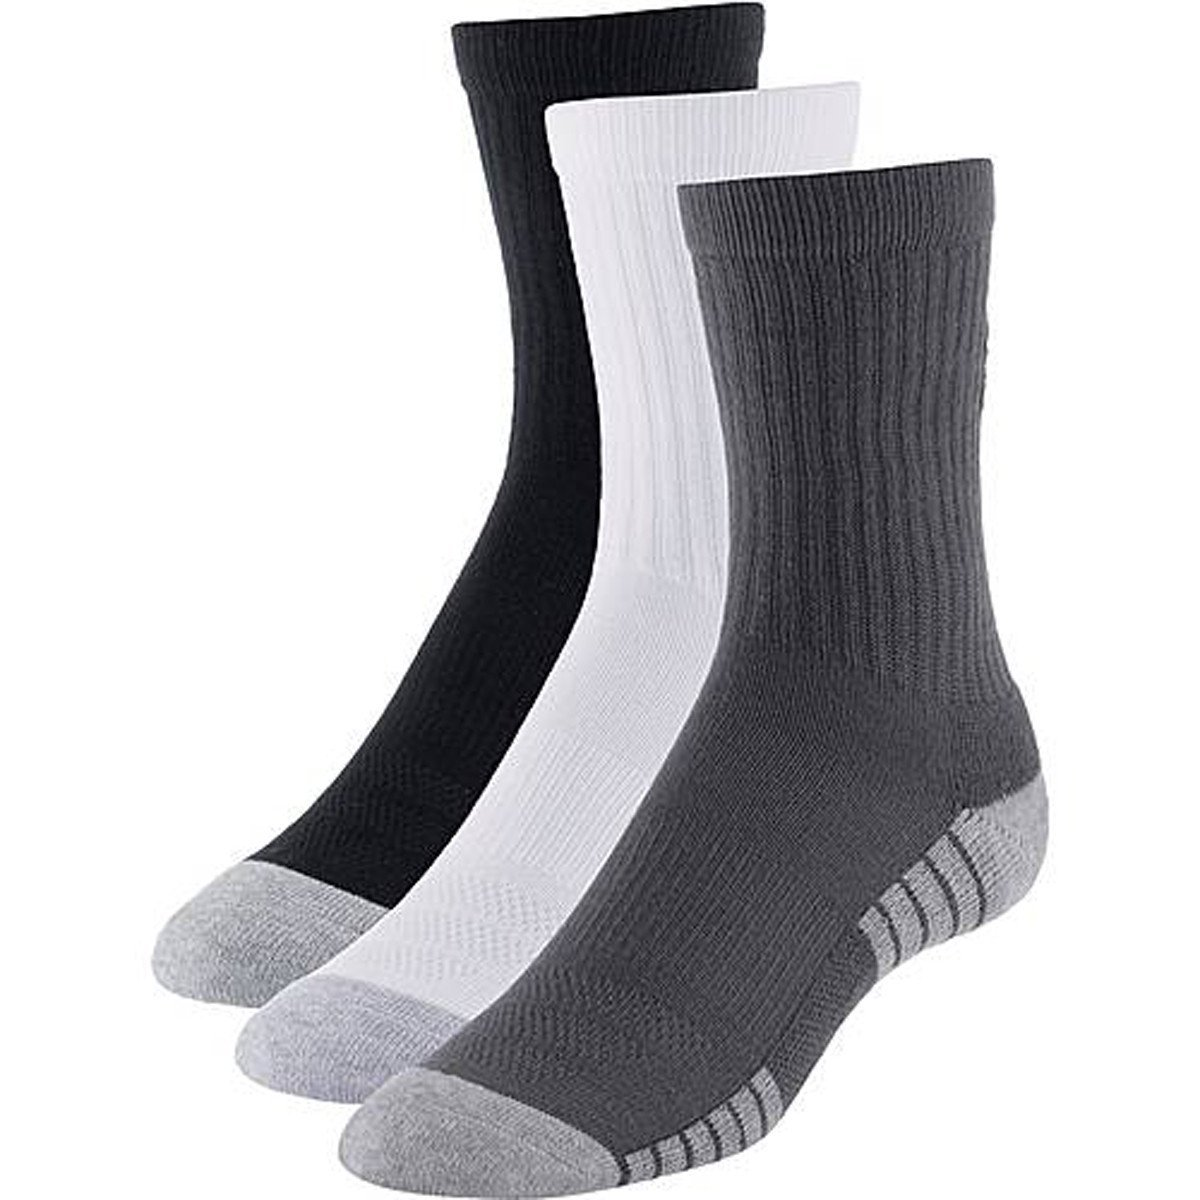 Heatgear Tech Crew 3Pk Unisex Socks Under Armour 1312341